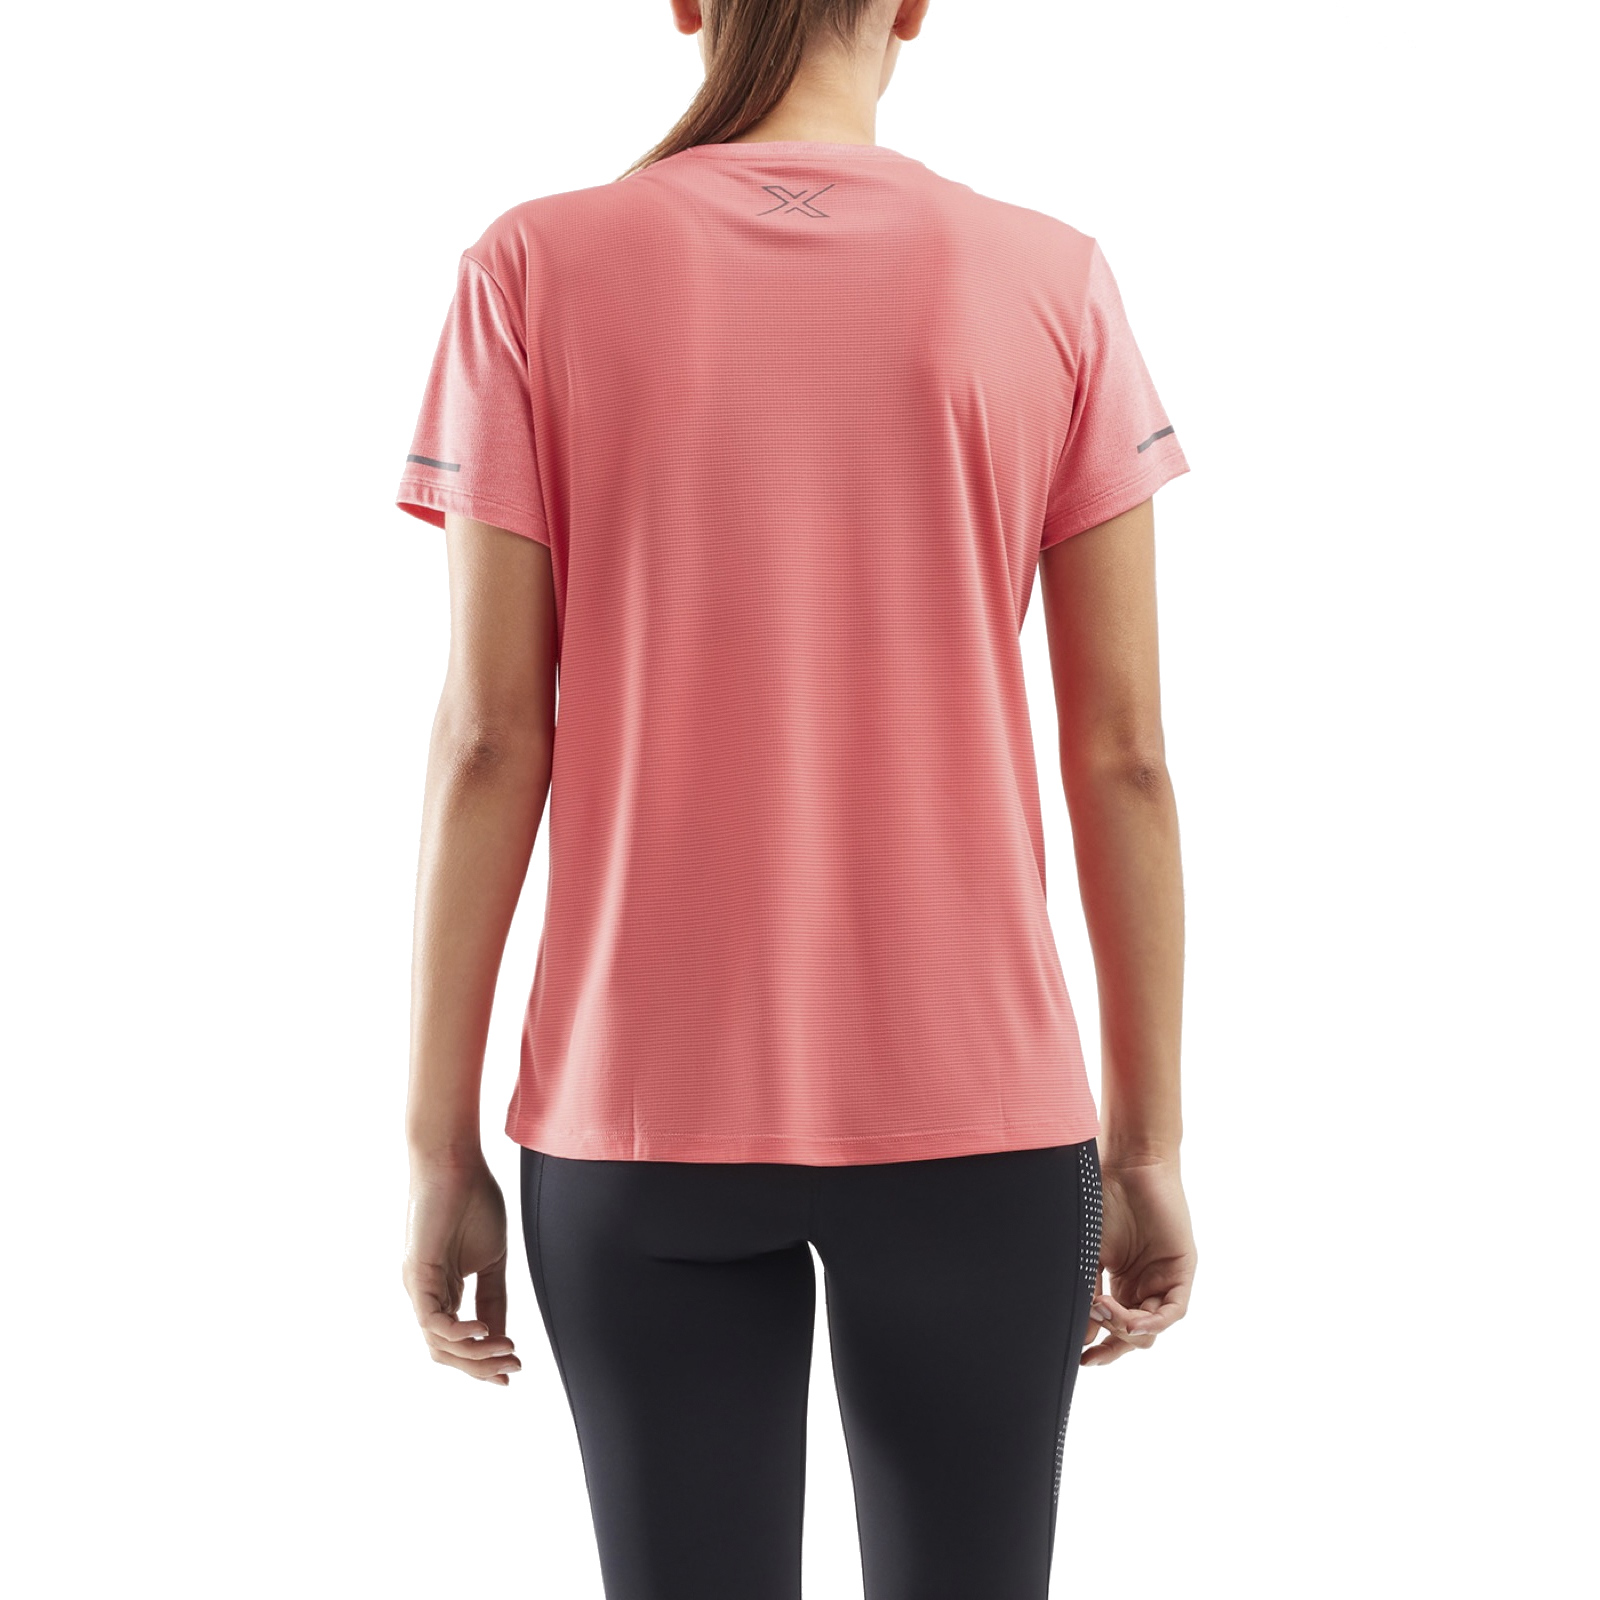 Image of 2XU XVENT G2 Shortsleeve Women's Tee - pink lift/silver reflective